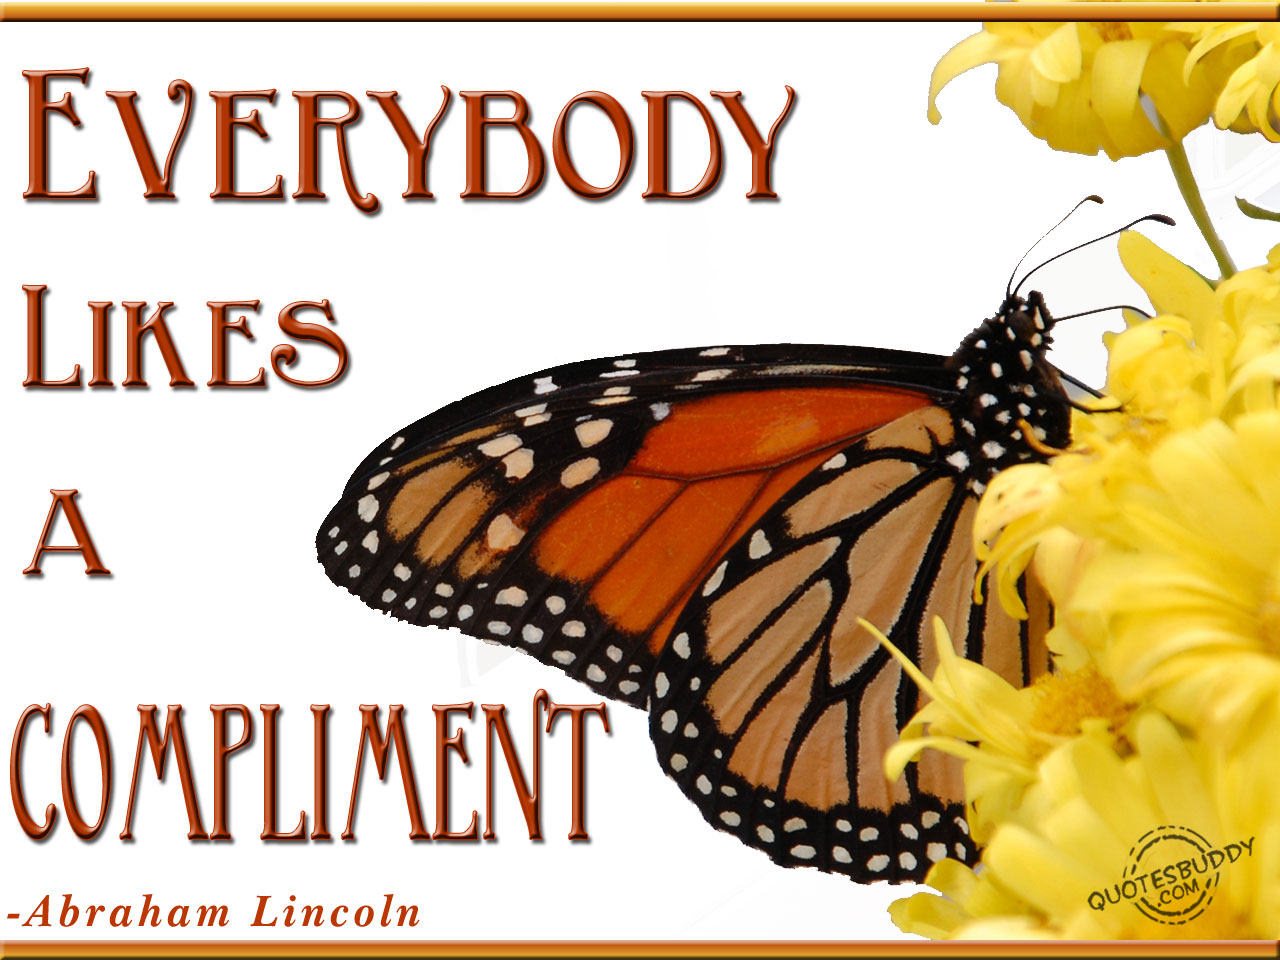 Compliment quote #6